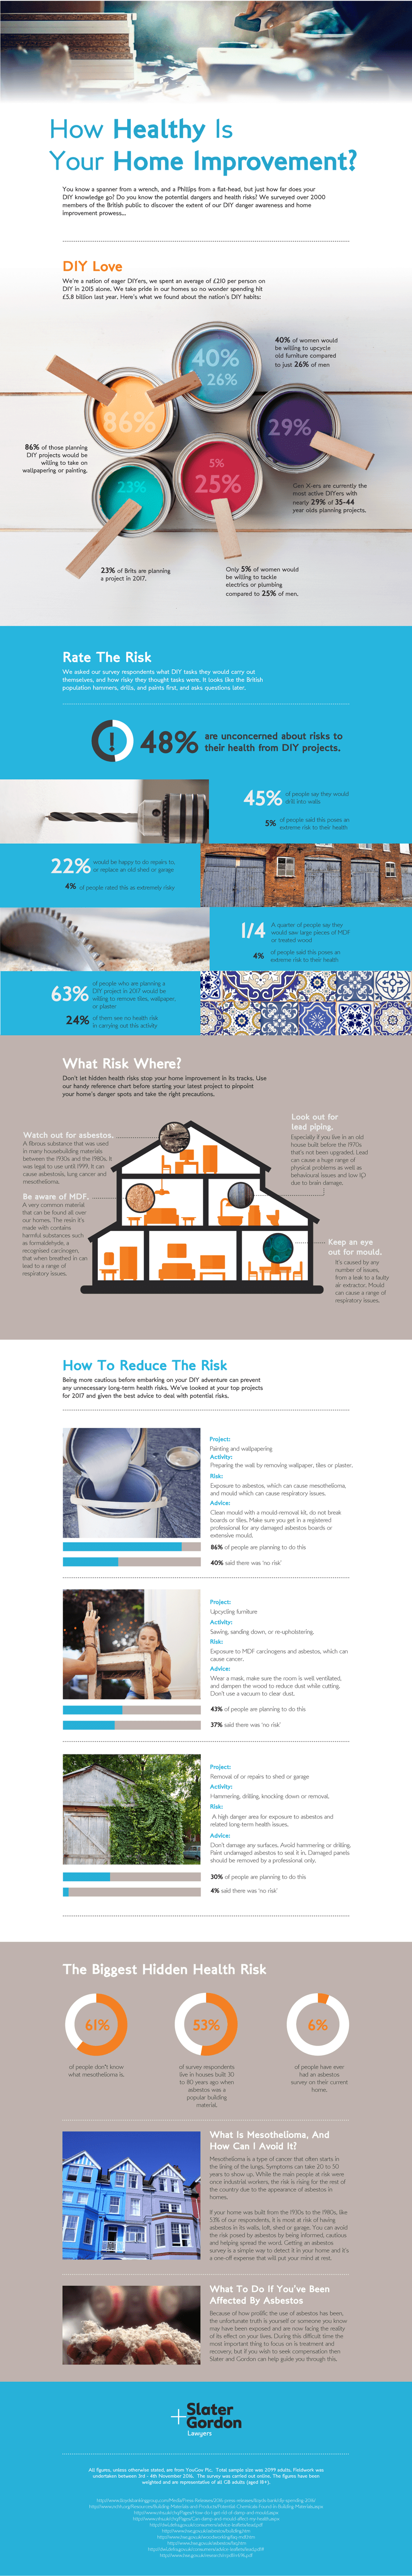 Are you a DIY fan? Do you love turning your hand to home improvements? DIY can be so rewarding but is it safe? Know the dangers and learn how to DIY safely.